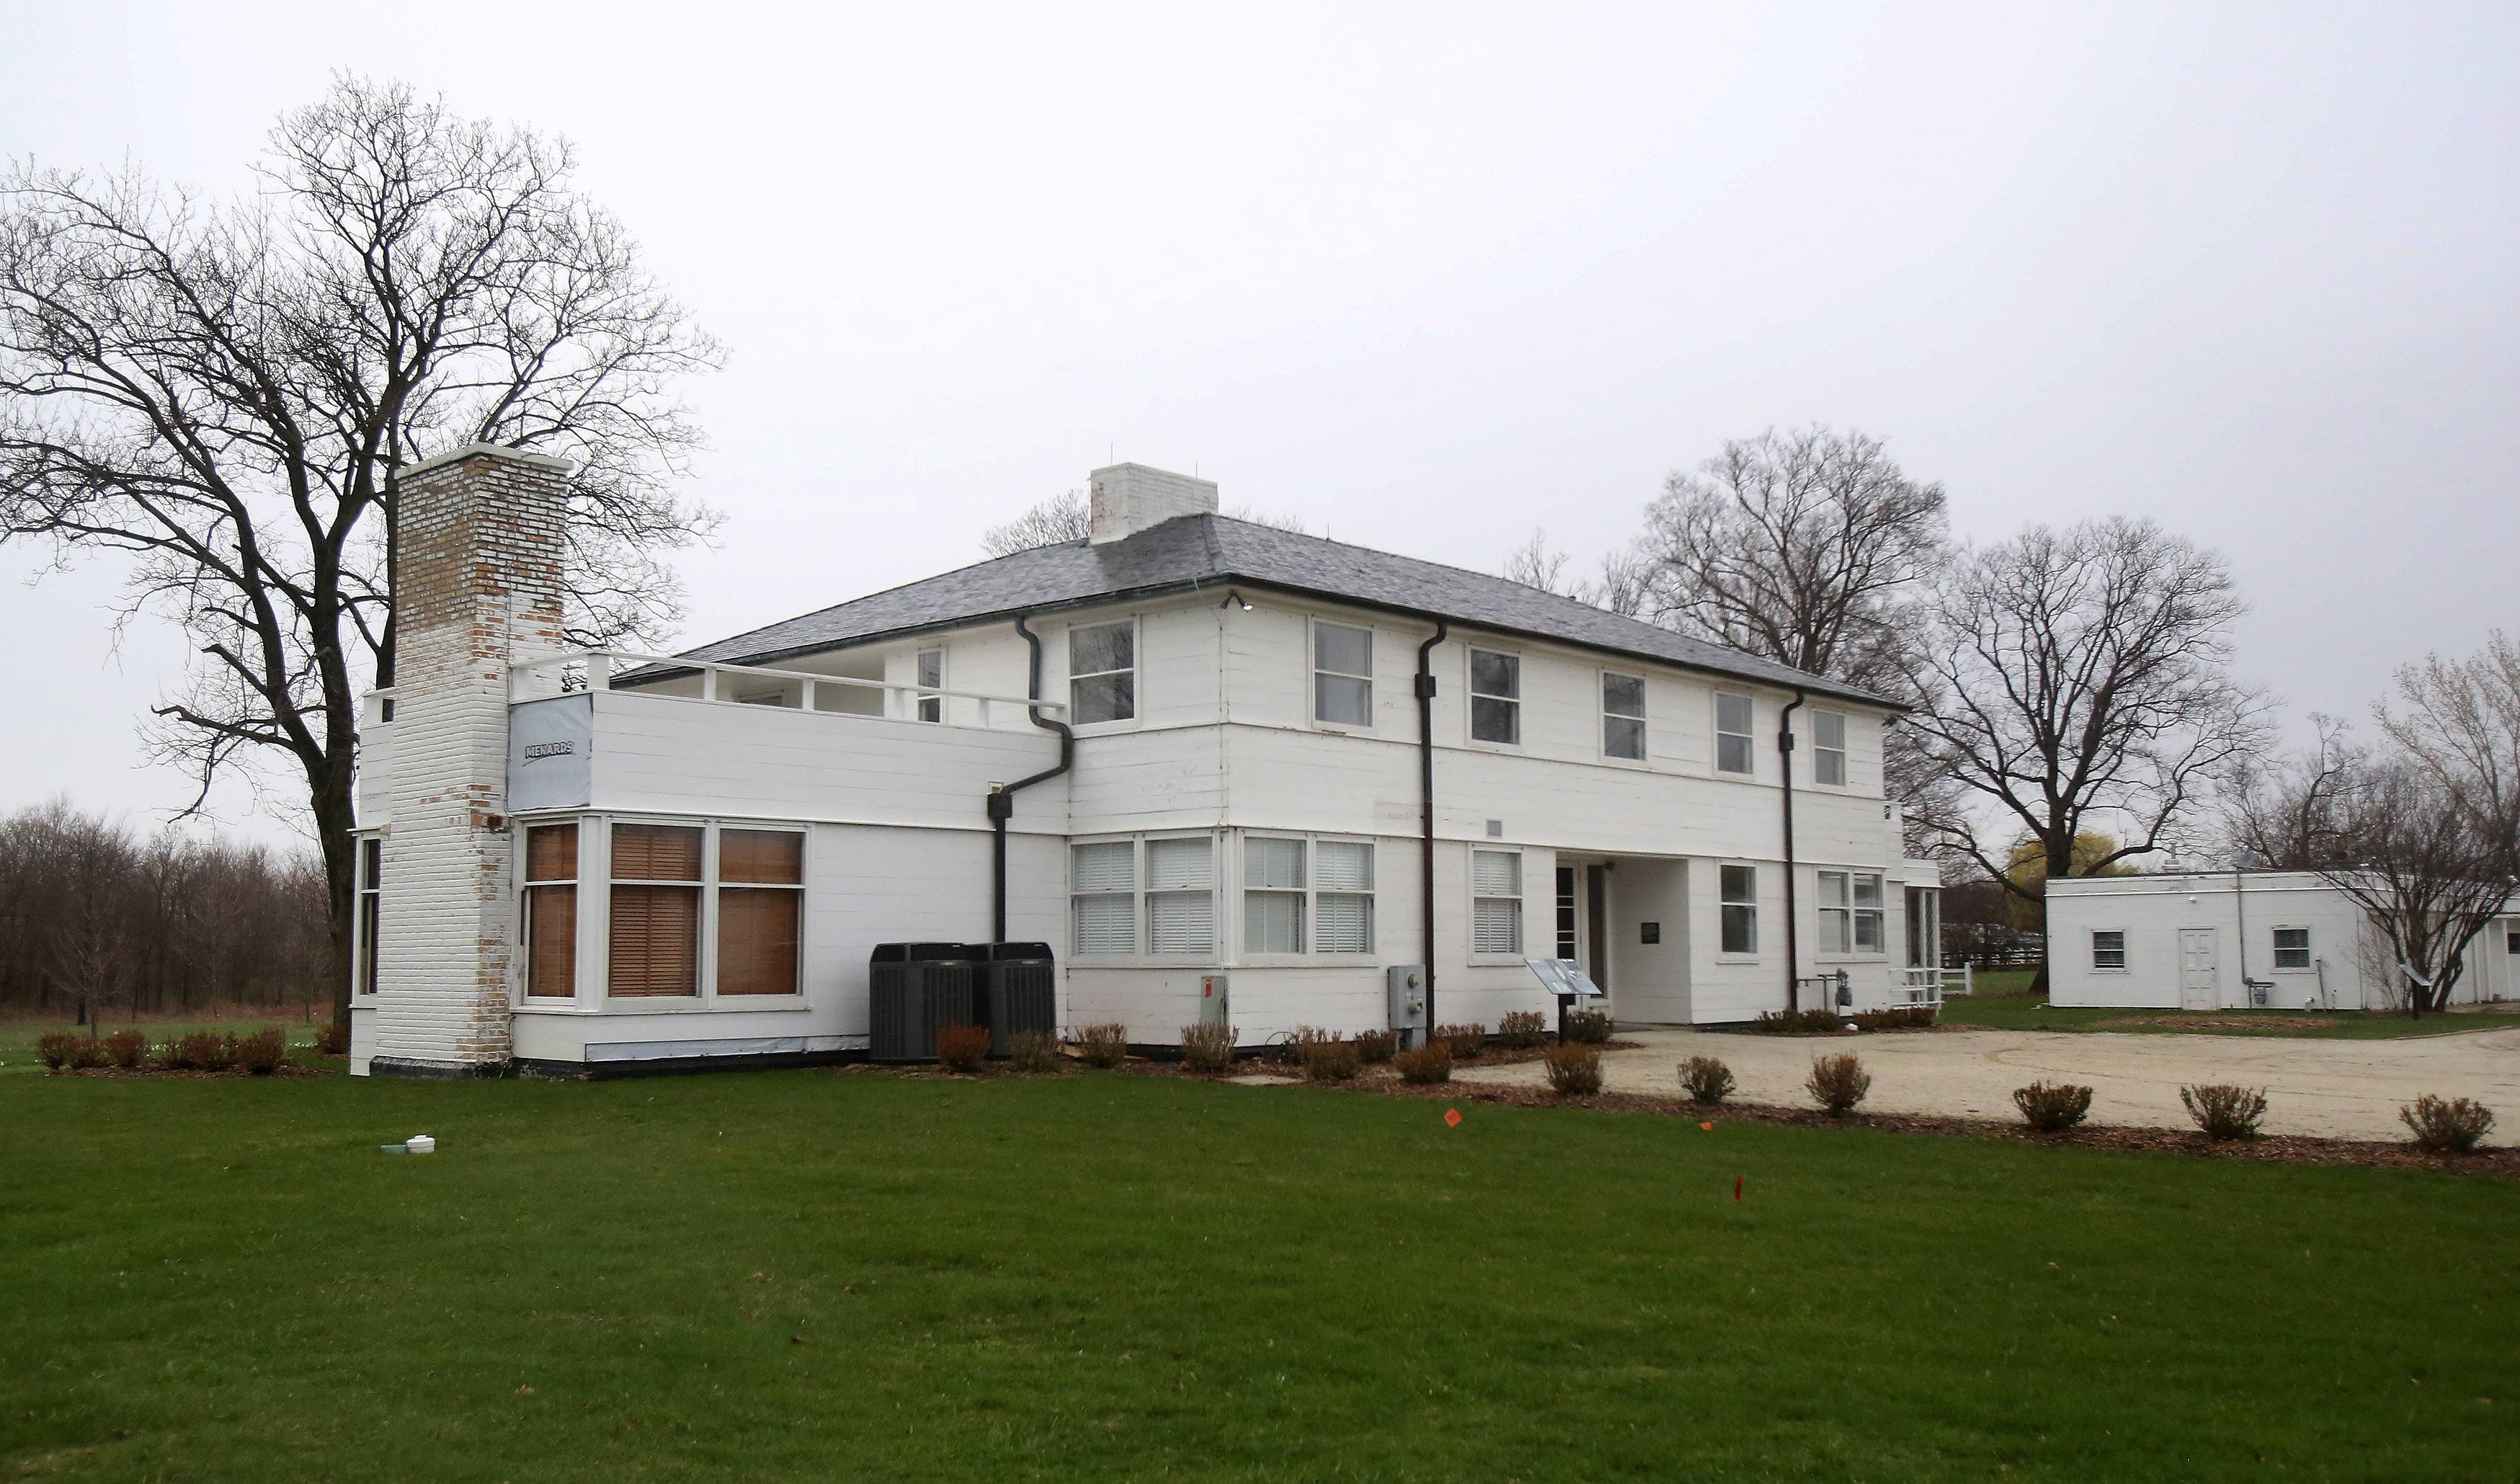 The Adlai E. Stevenson II Historic Home in Mettawa was built in 1938 by Stevenson and his wife, Ellen Borden, and is located in Wright Woods Forest Preserve and owned by the Lake County Forest Preserve District.